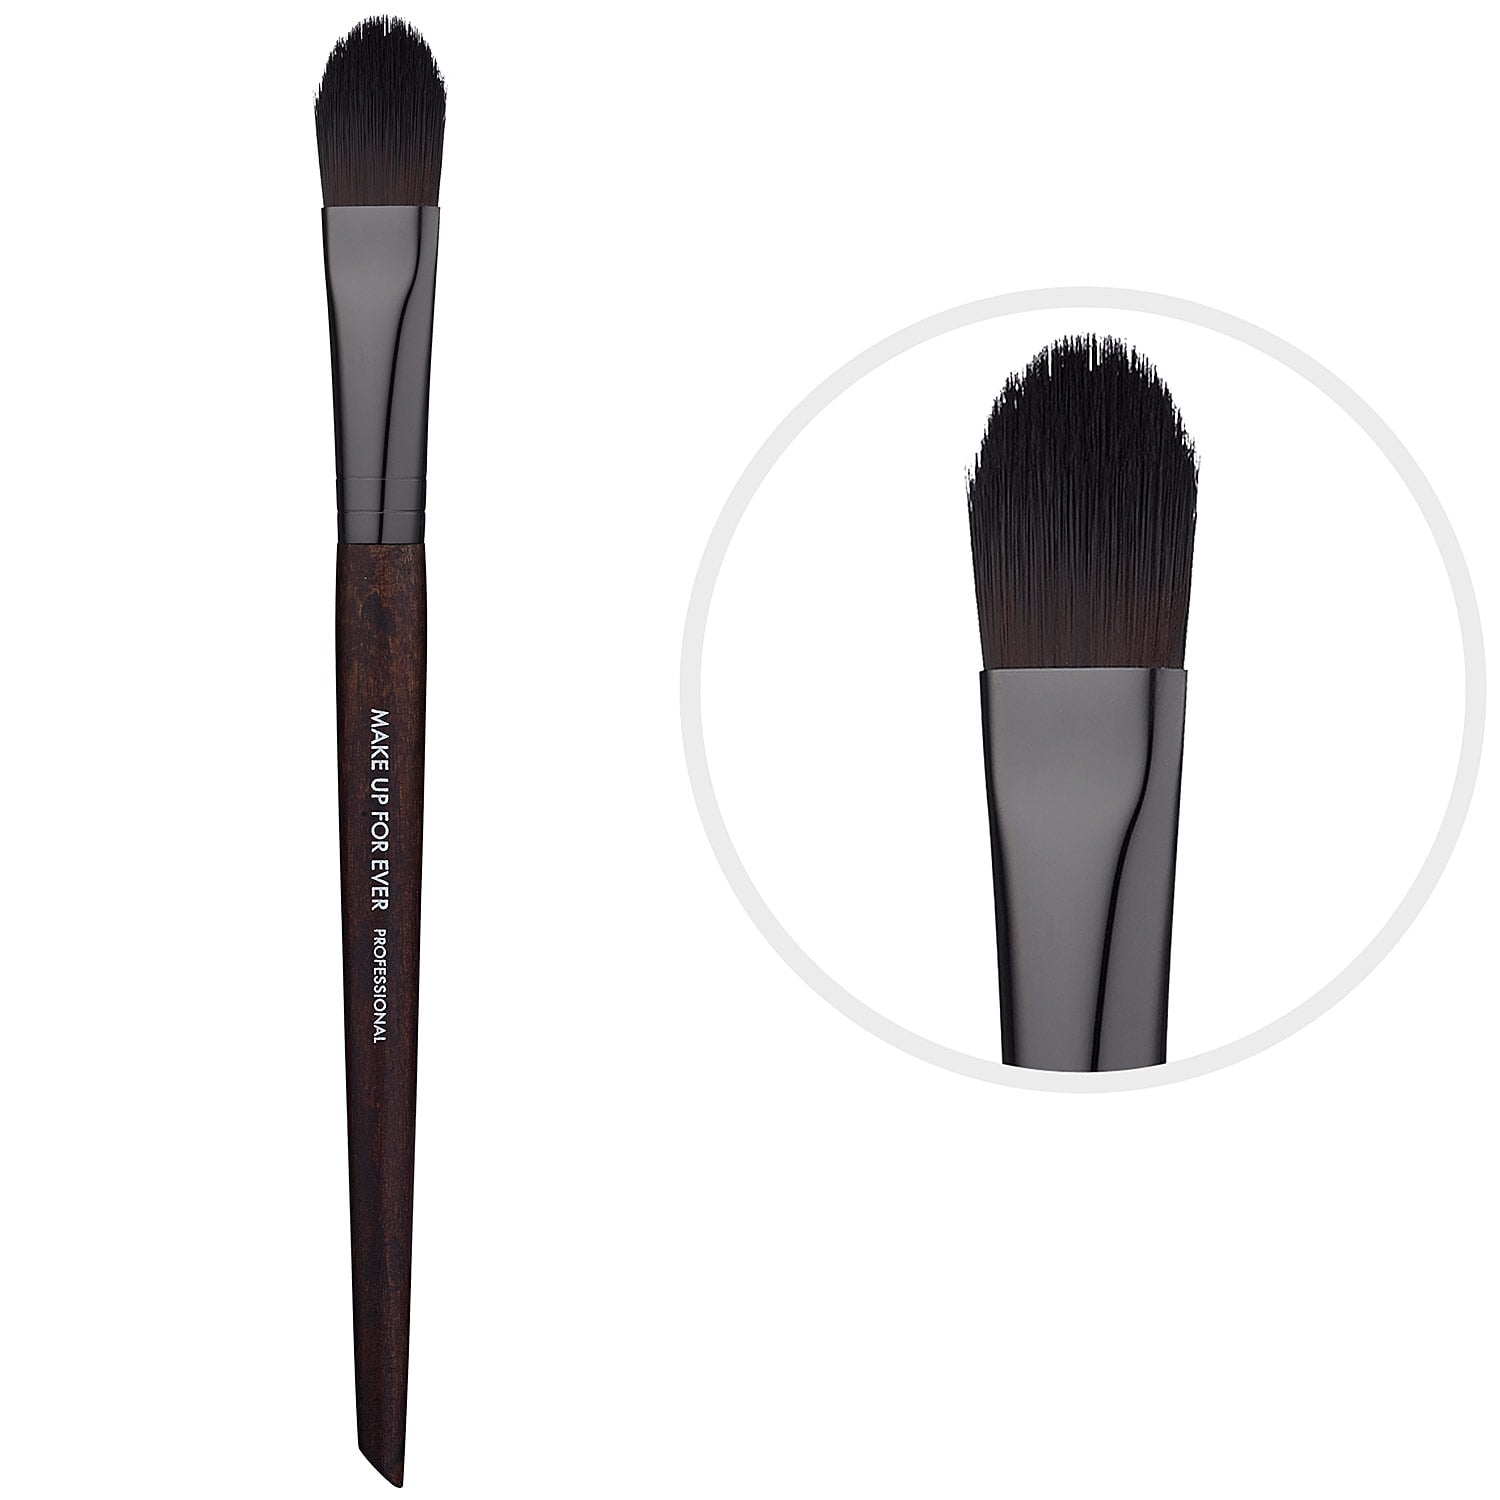 176 Medium Concealer Brush